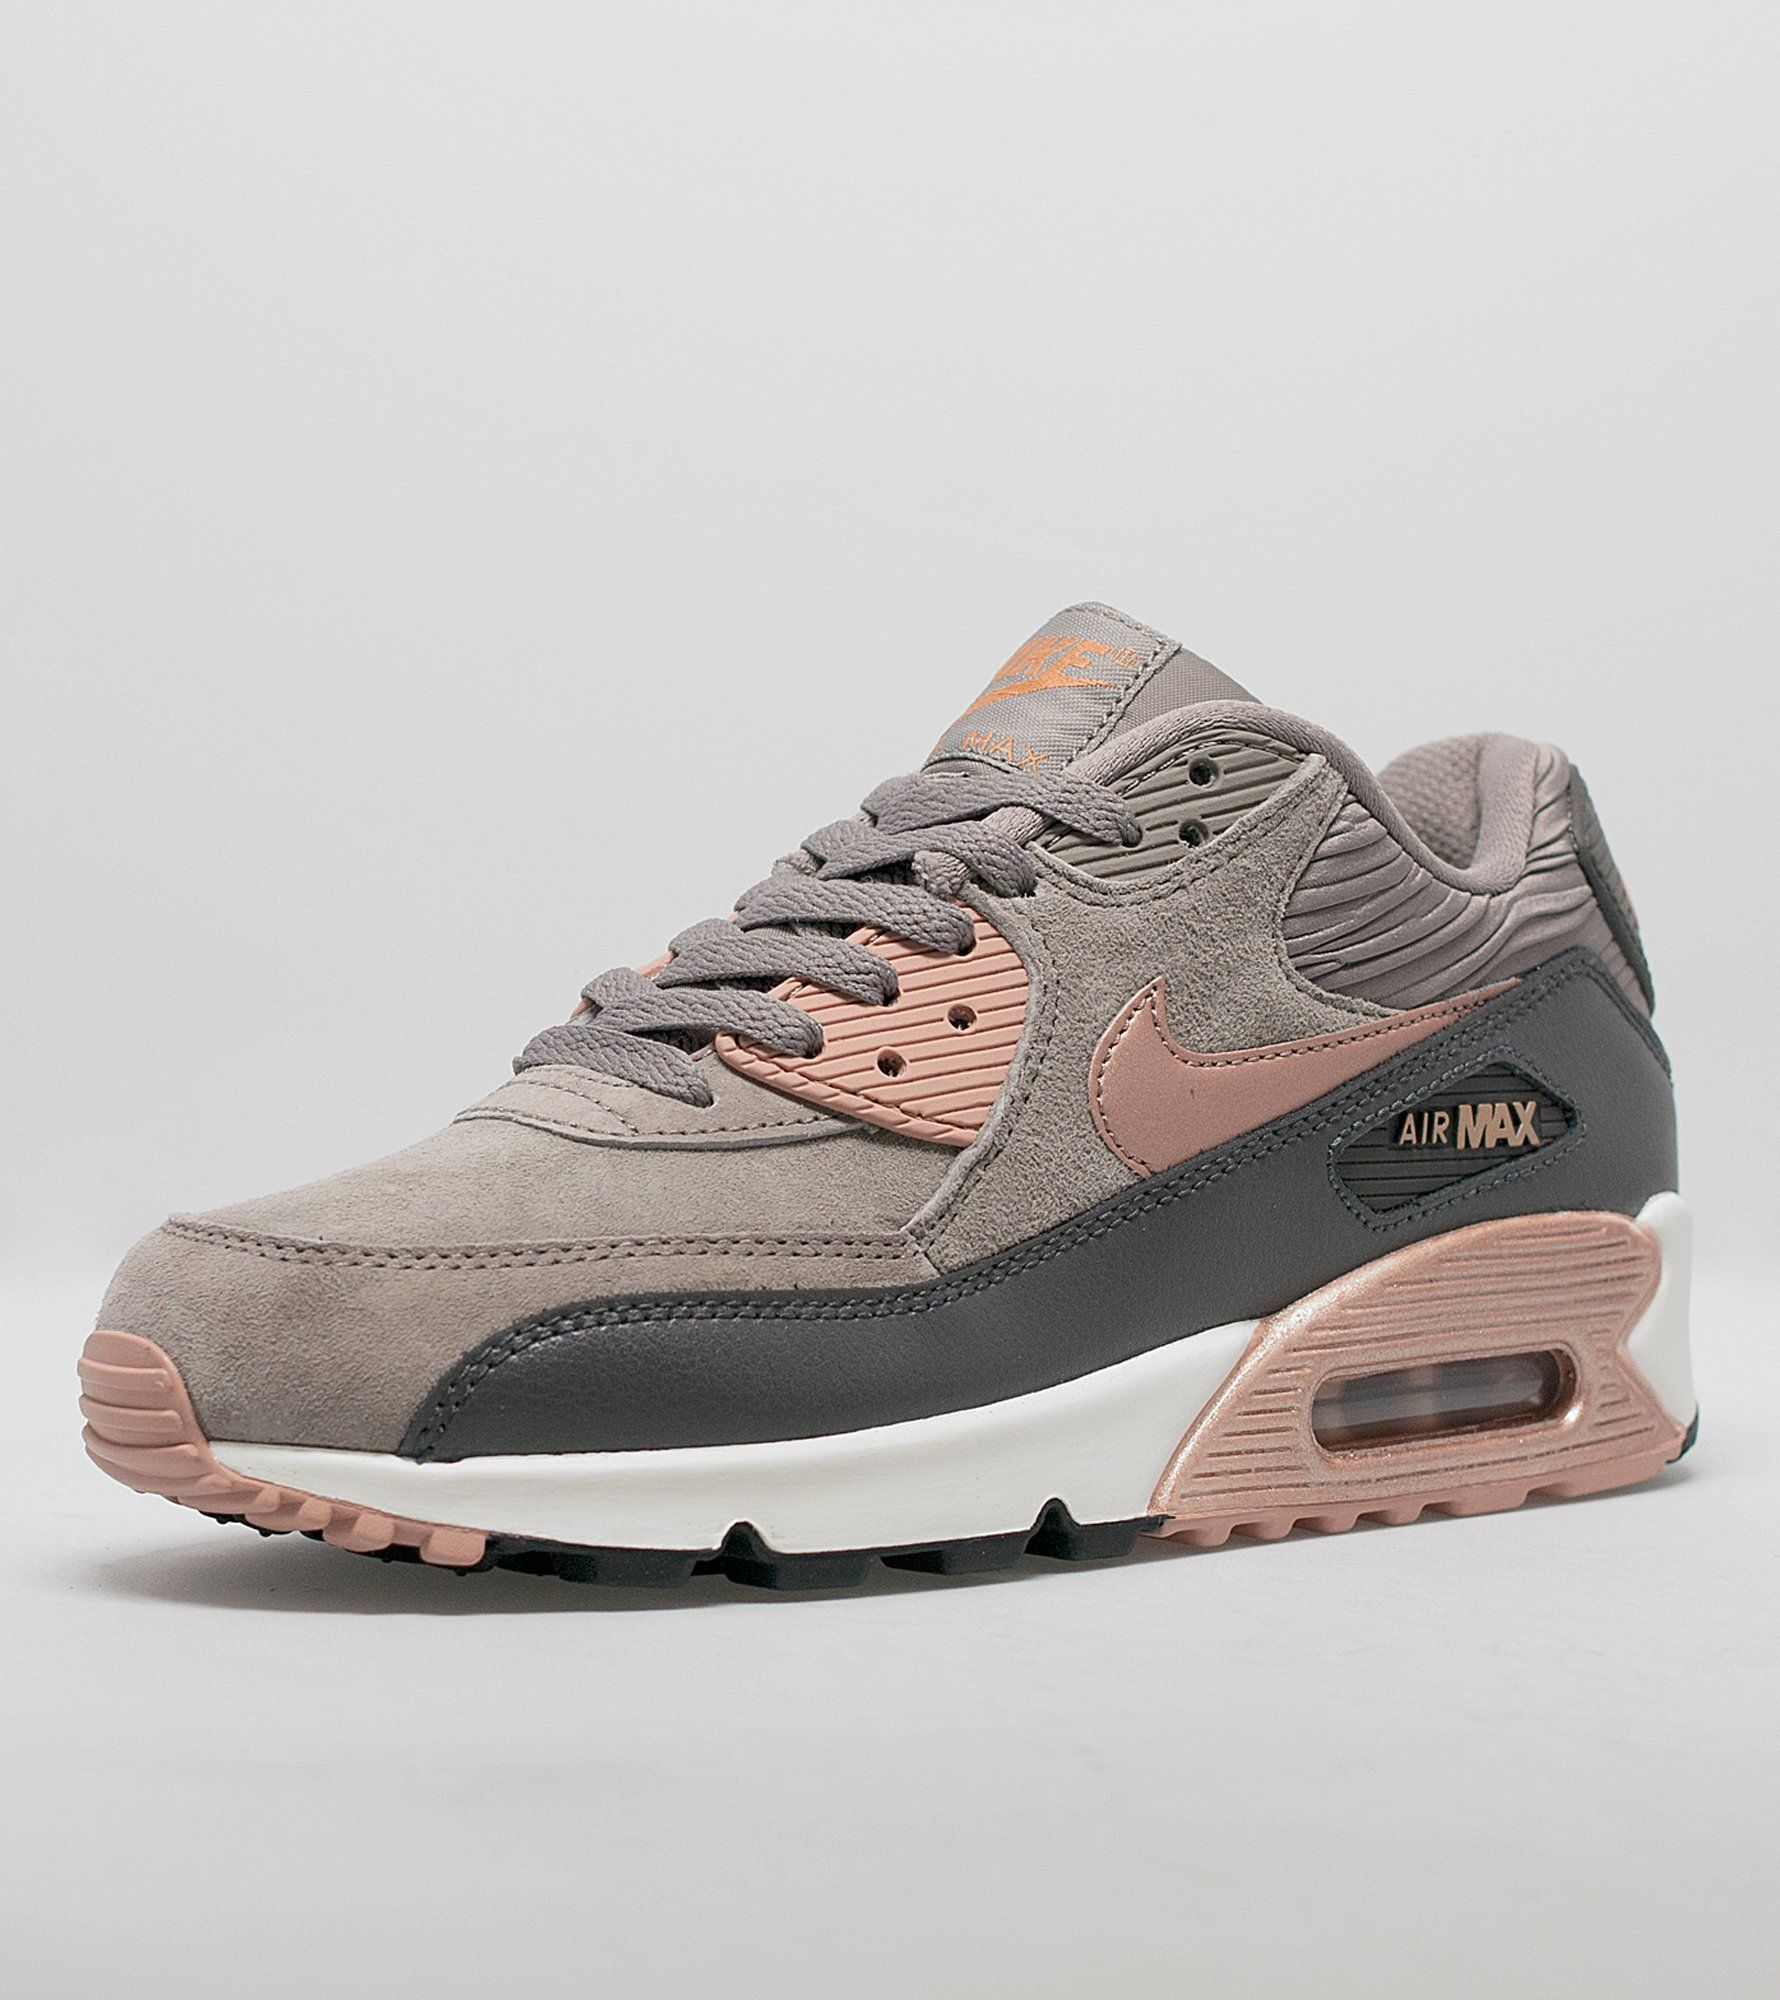 uk availability 42bb2 ba5ac free shipping nike air max 90 womens suede d483d 07e23